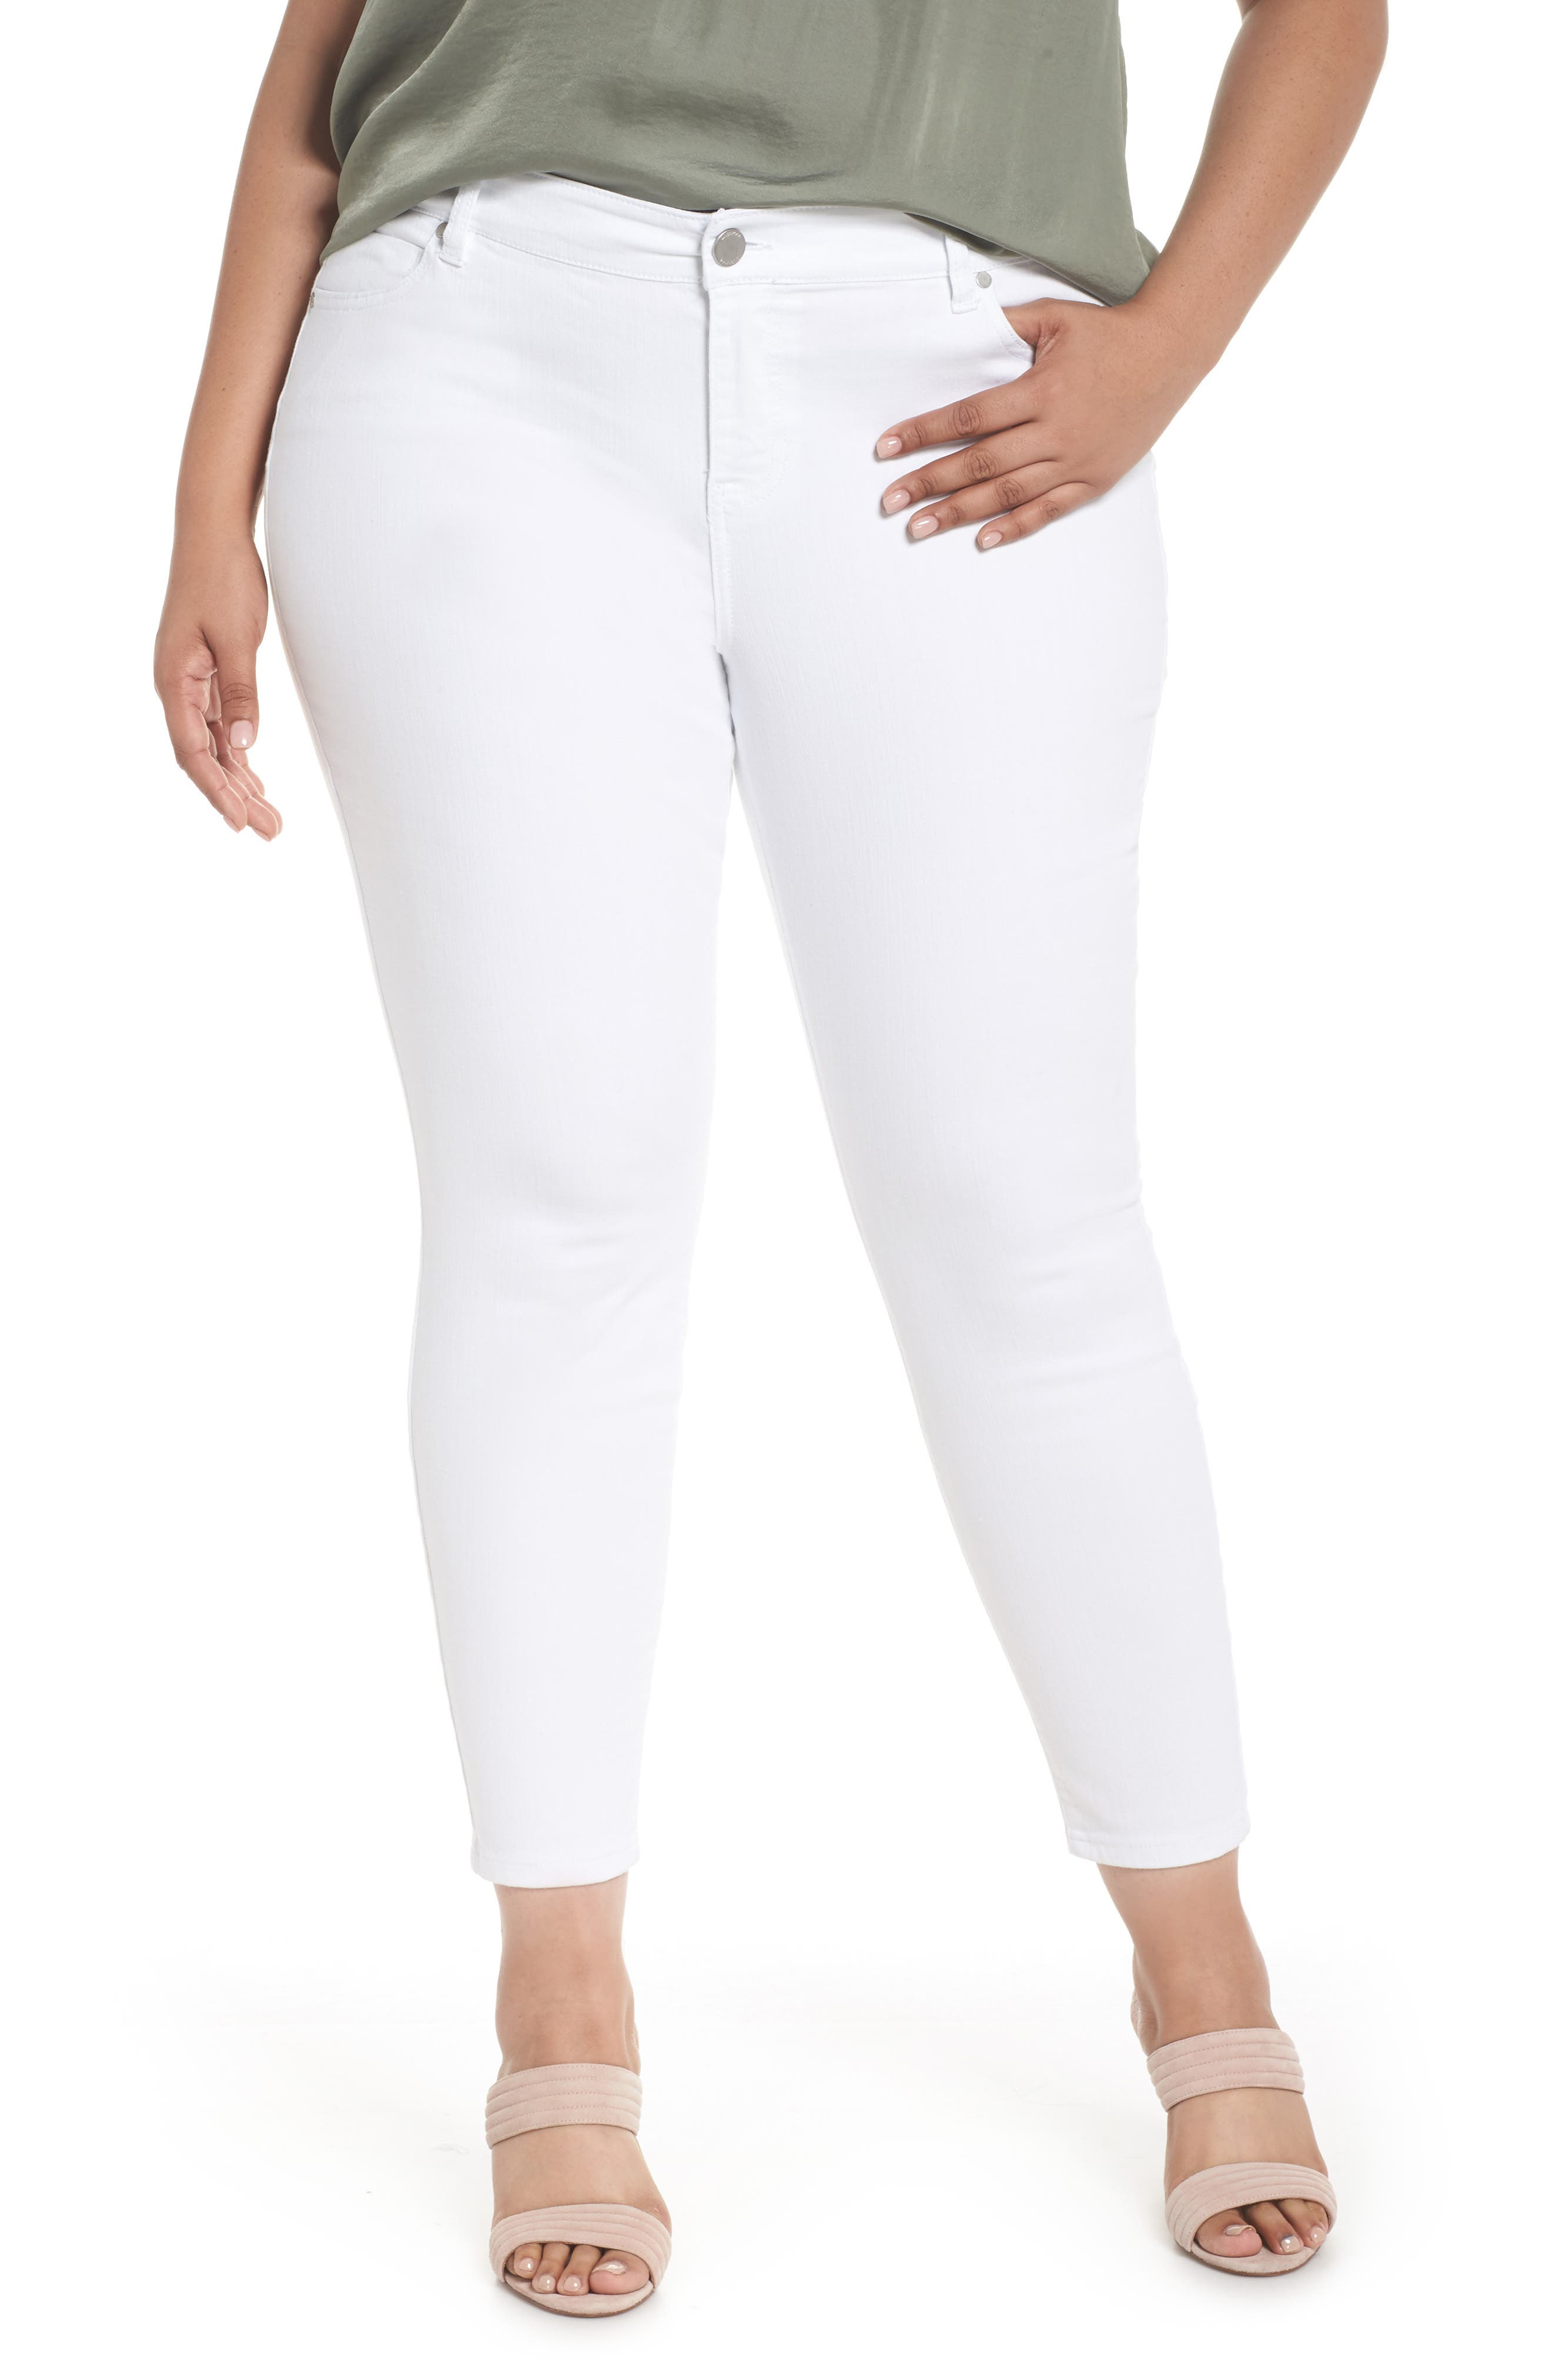 Main Image - Liverpool Jeans Company Penny Ankle Skinny Jeans (Plus Size)